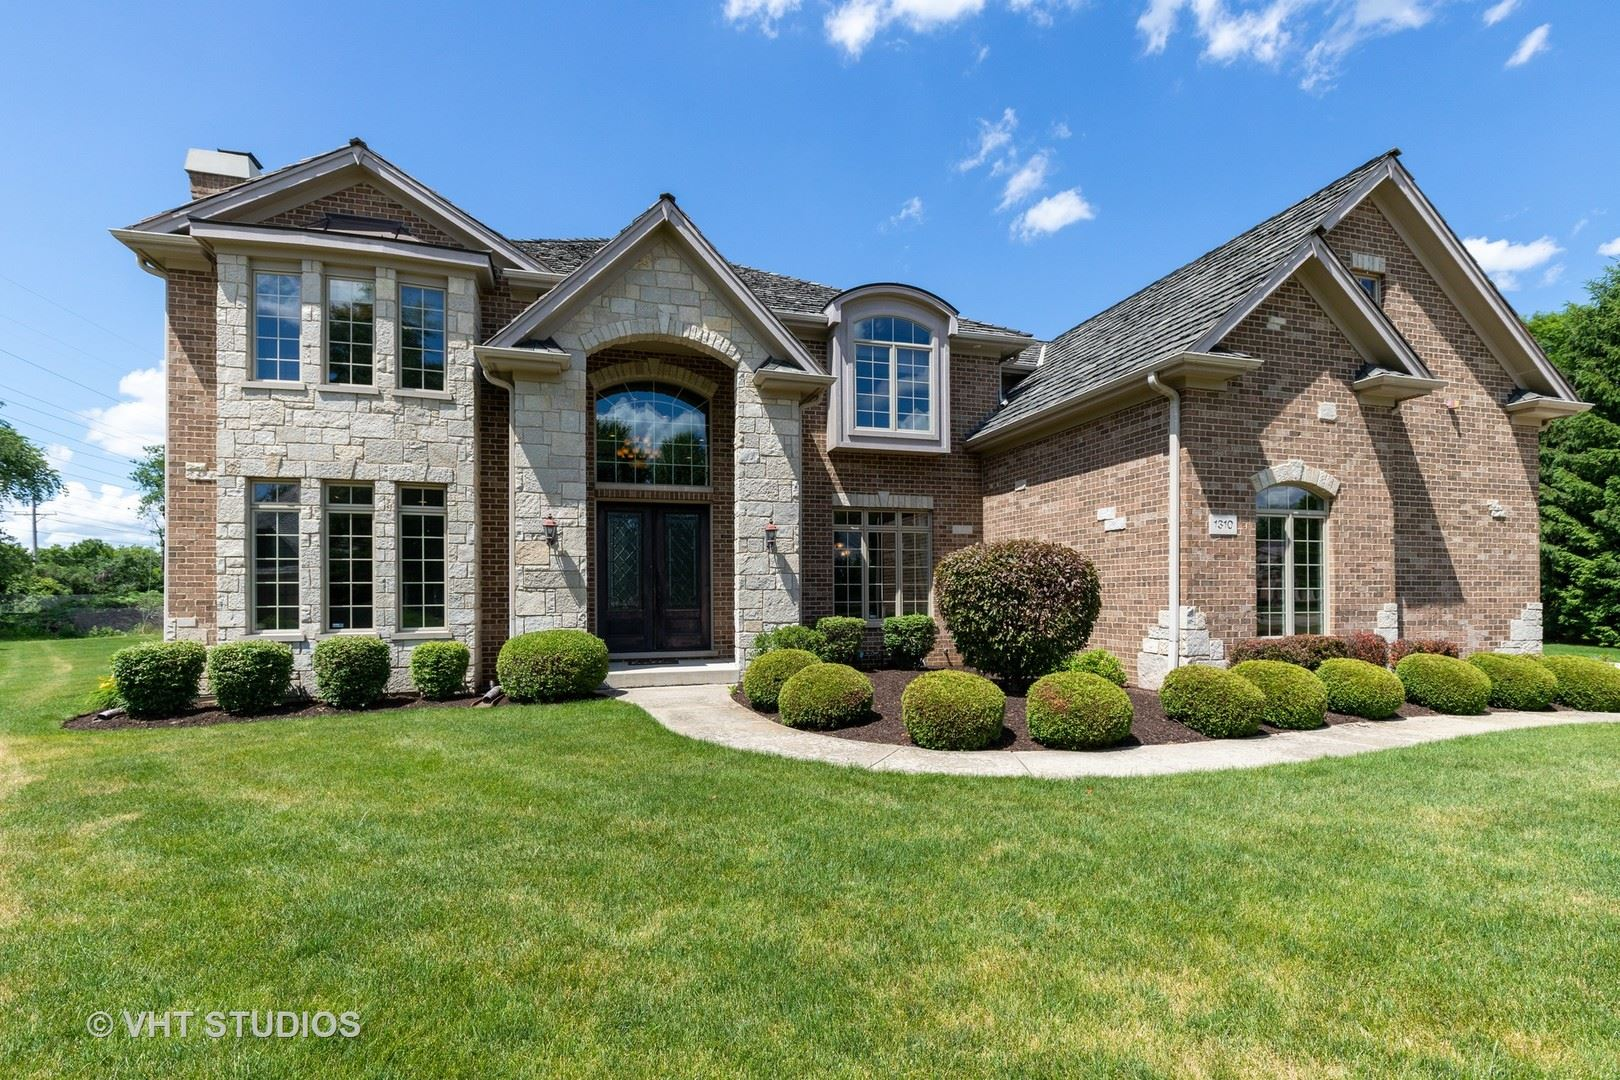 1310 HACKBERRY Court, Libertyville, IL 60048 - #: 10761721